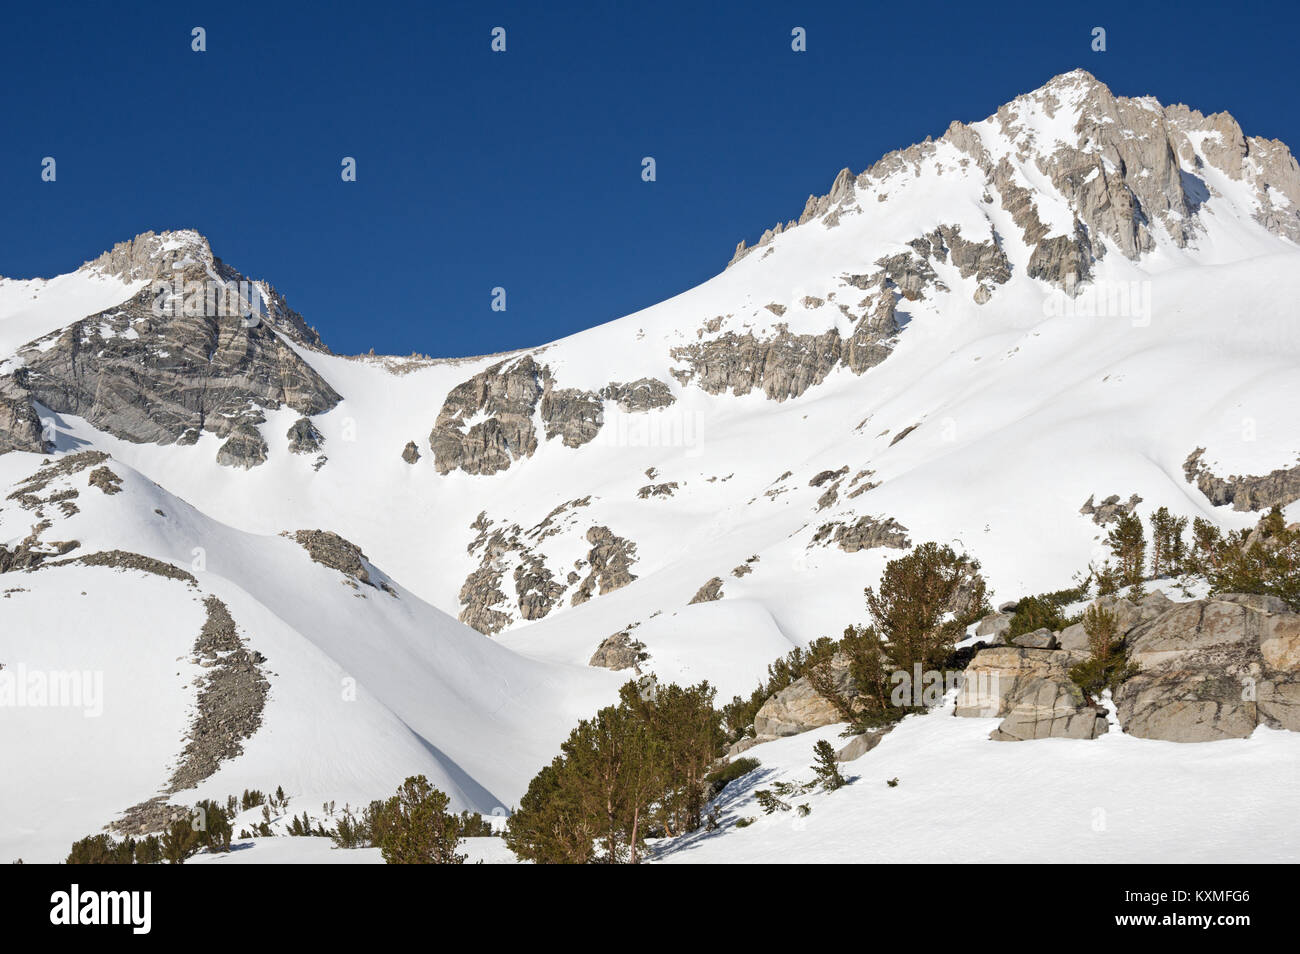 Mount Dade and the Hourglass Couloir in the Sierra Nevada Mountains - Stock Image